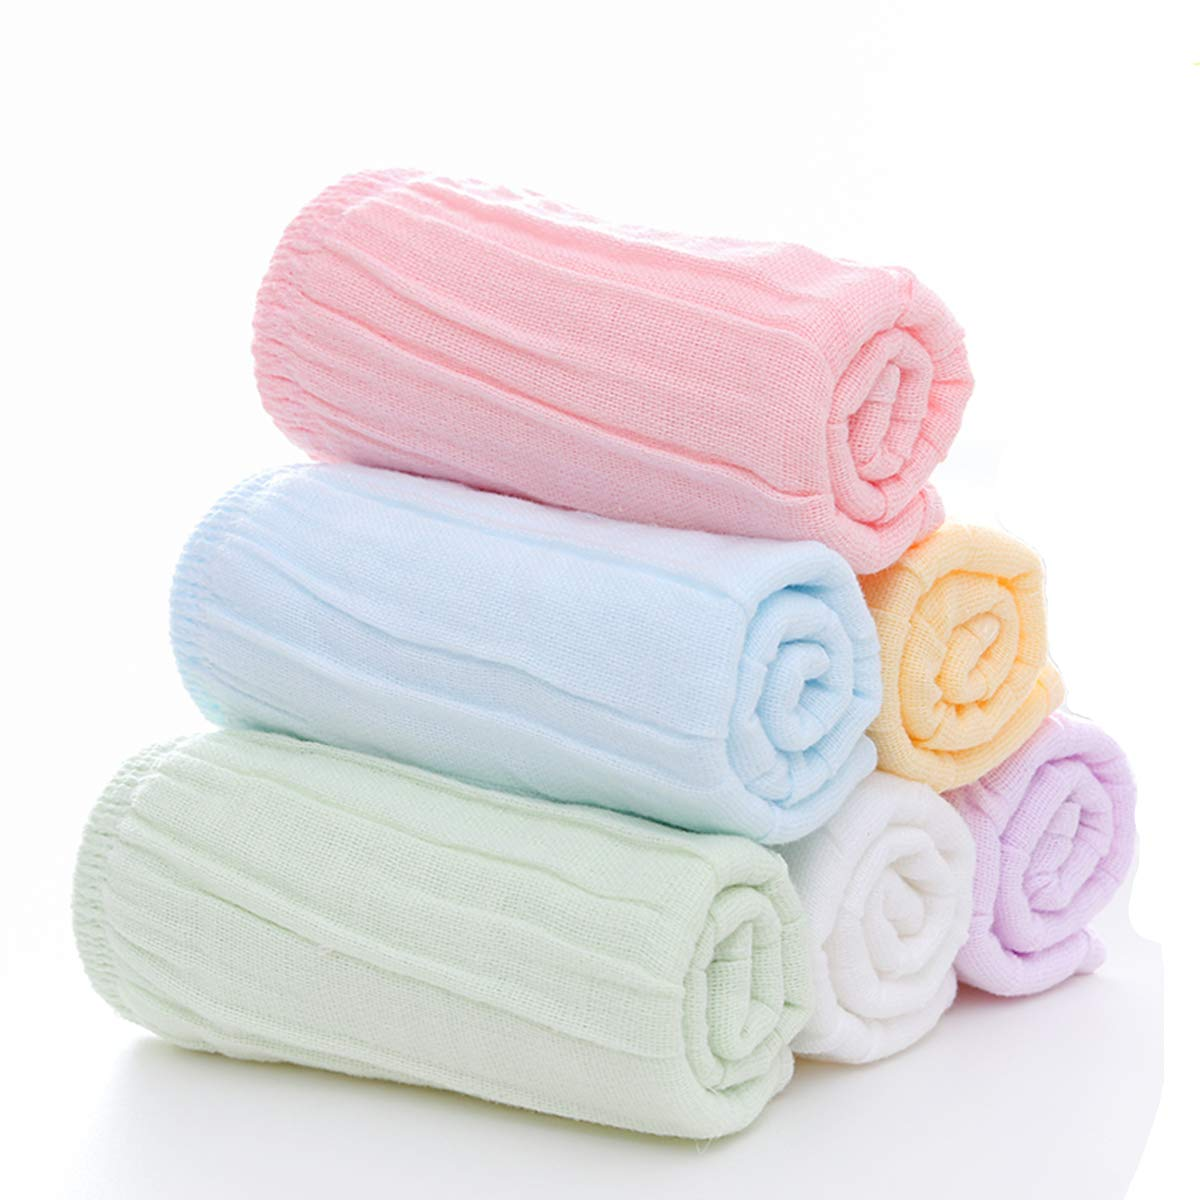 Baby Wash Cloth by MUKIN - Premium Baby Muslin Washcloths and Towels for Newborn Baby Face Towel -[New Designed with Organic Muslin Cotton & Elastic Hem]- Great Baby Shower Gift Set of 6(10x10inches)